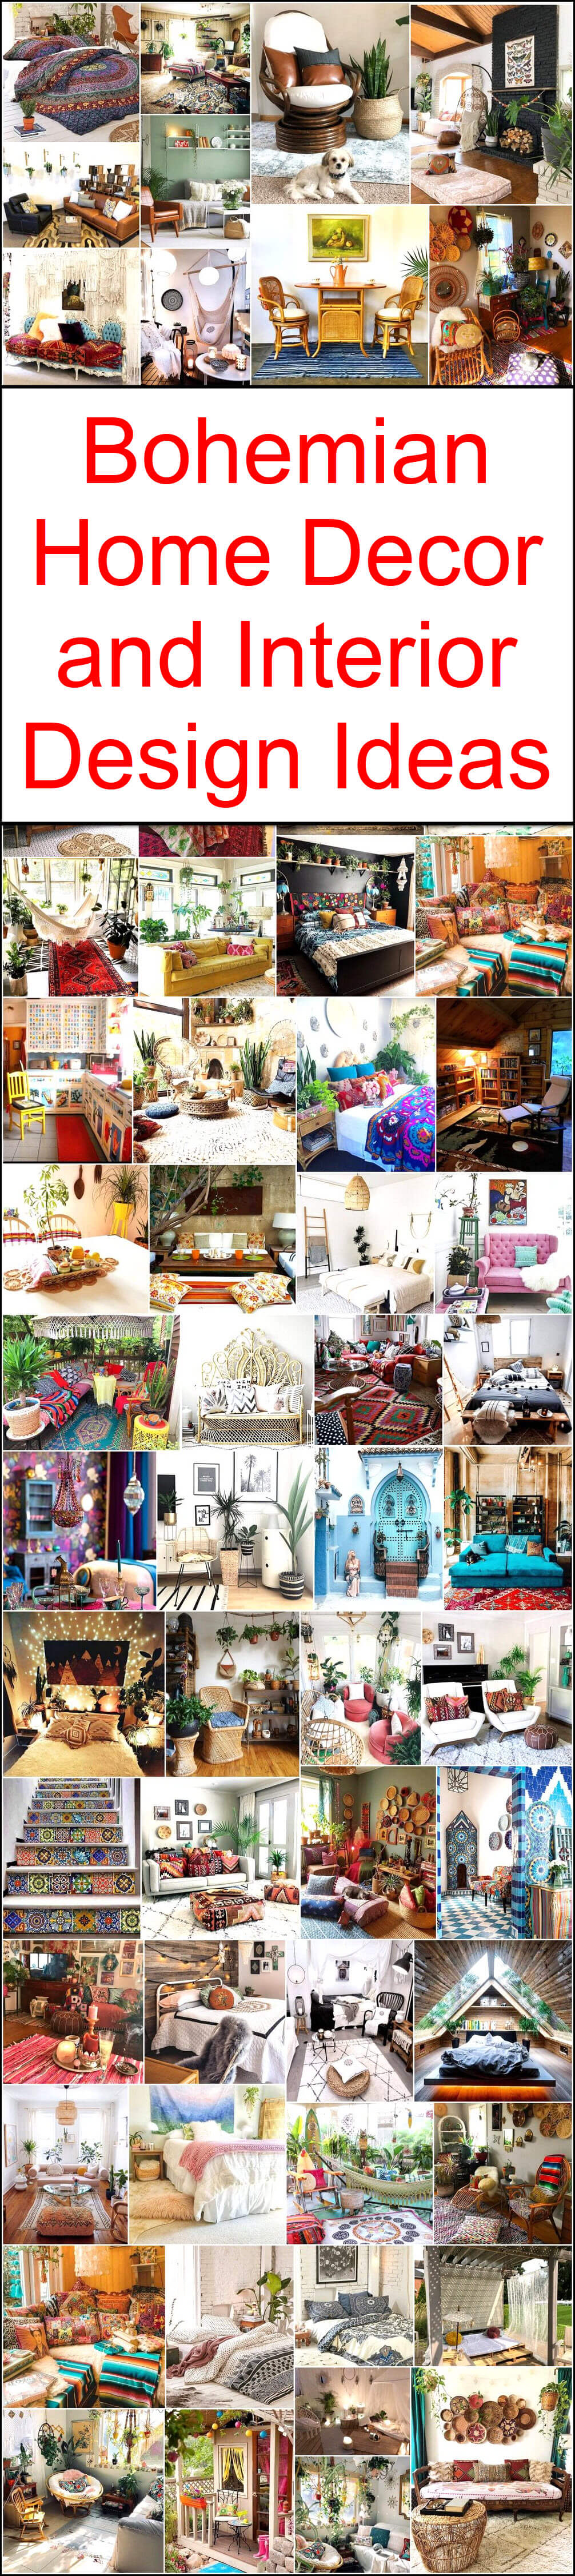 Bohemian Home Decor and Interior Design Ideas